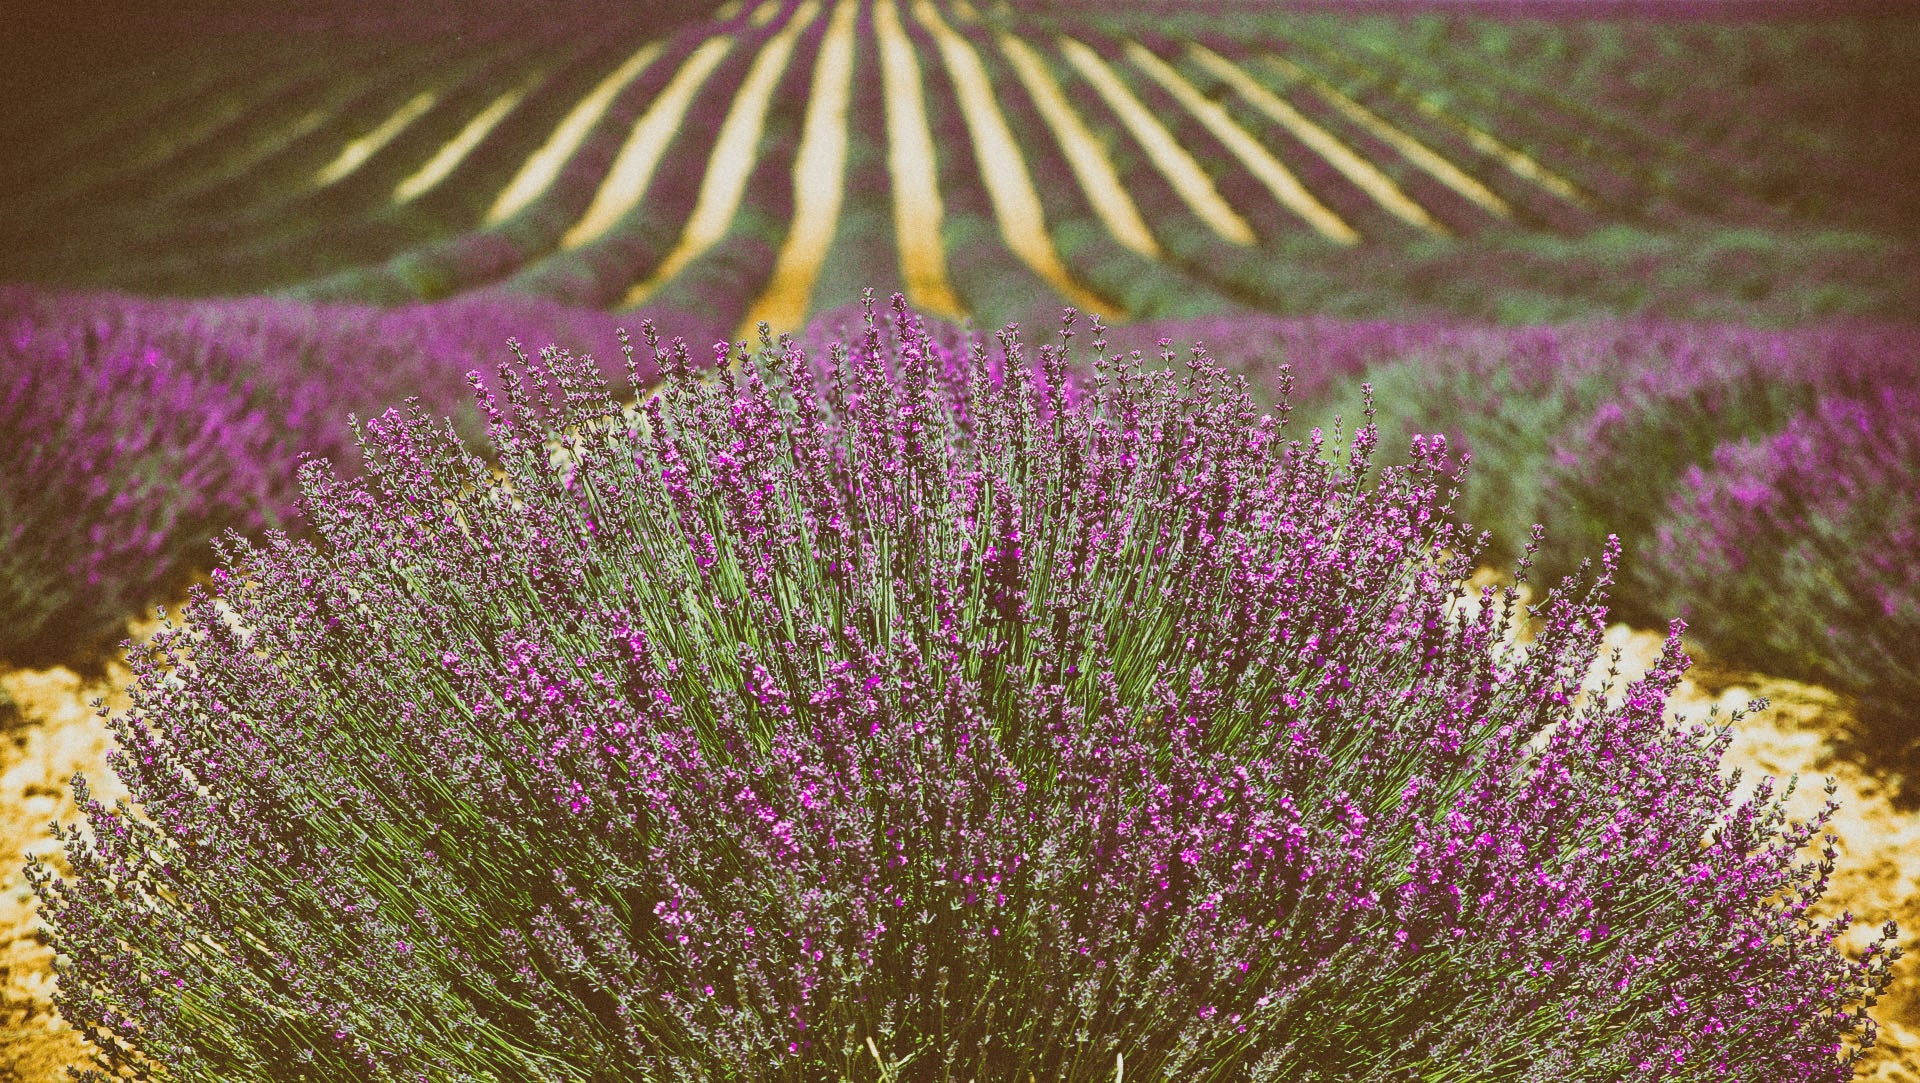 Rows of lavender in a lavender field